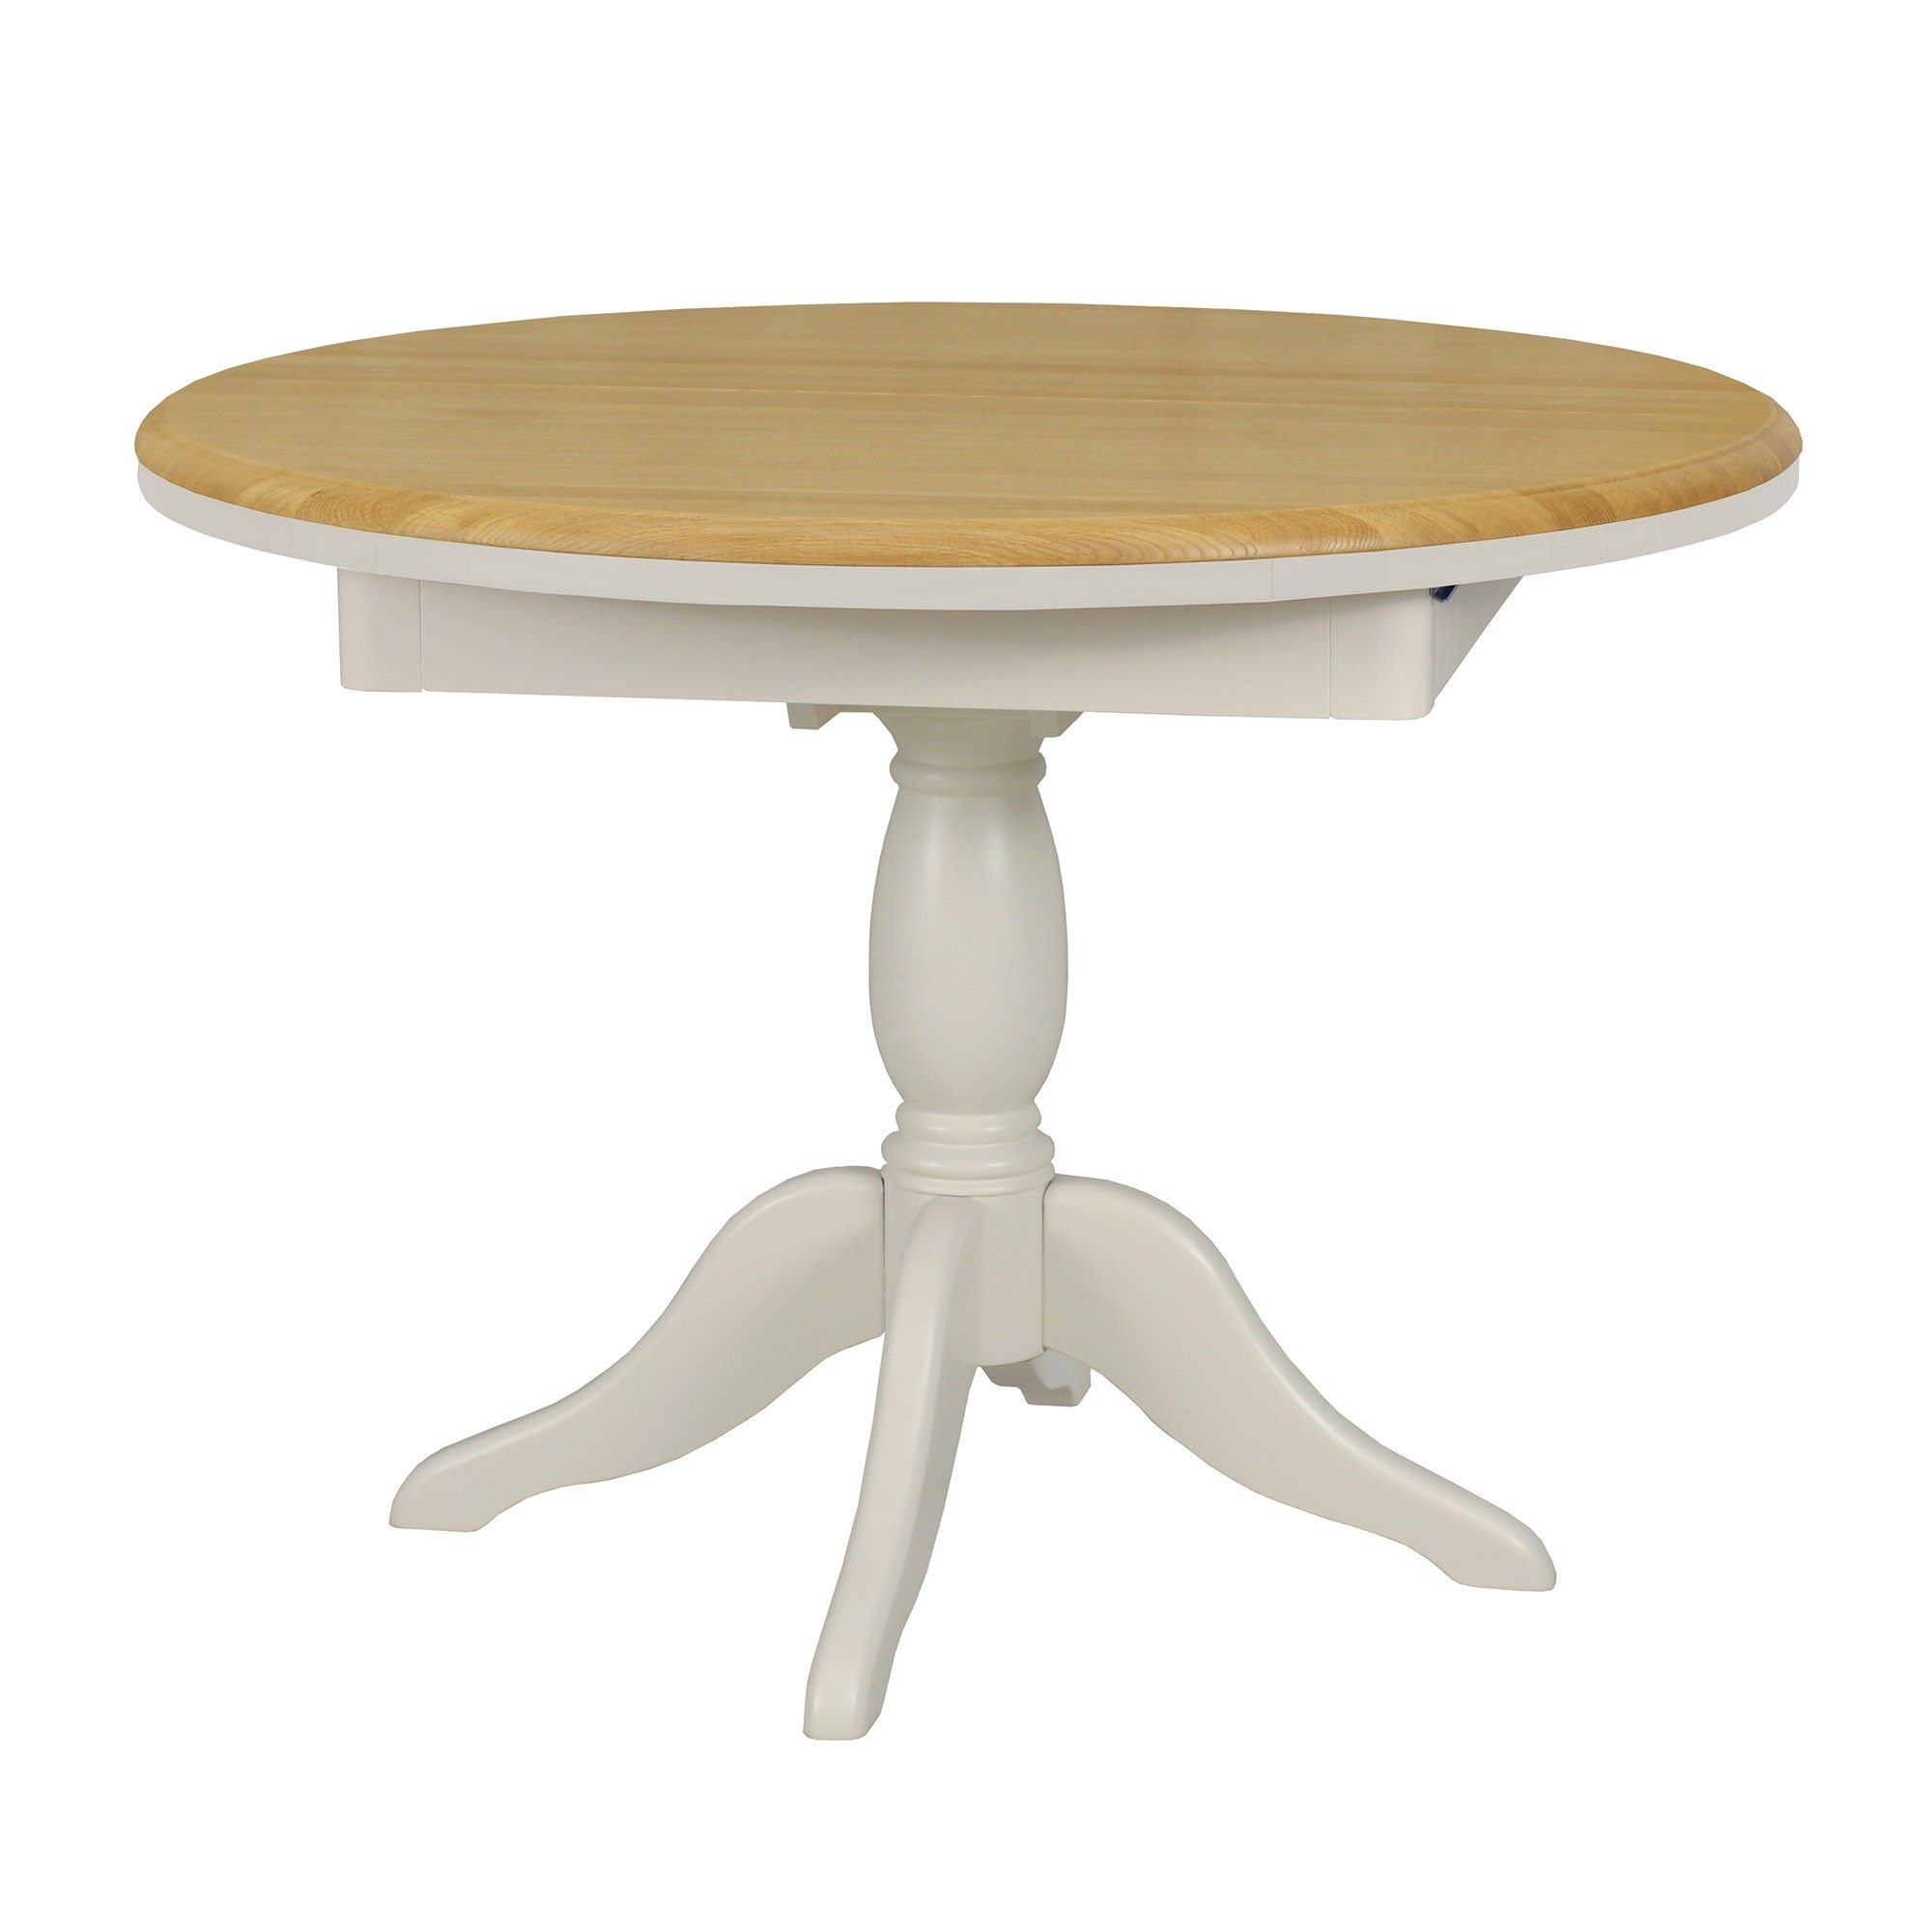 Round Extending Oak Dining Tables And Chairs Intended For Preferred Olivia Oak/painted 103 106 145Cm Round Extending Dining Table (View 18 of 25)